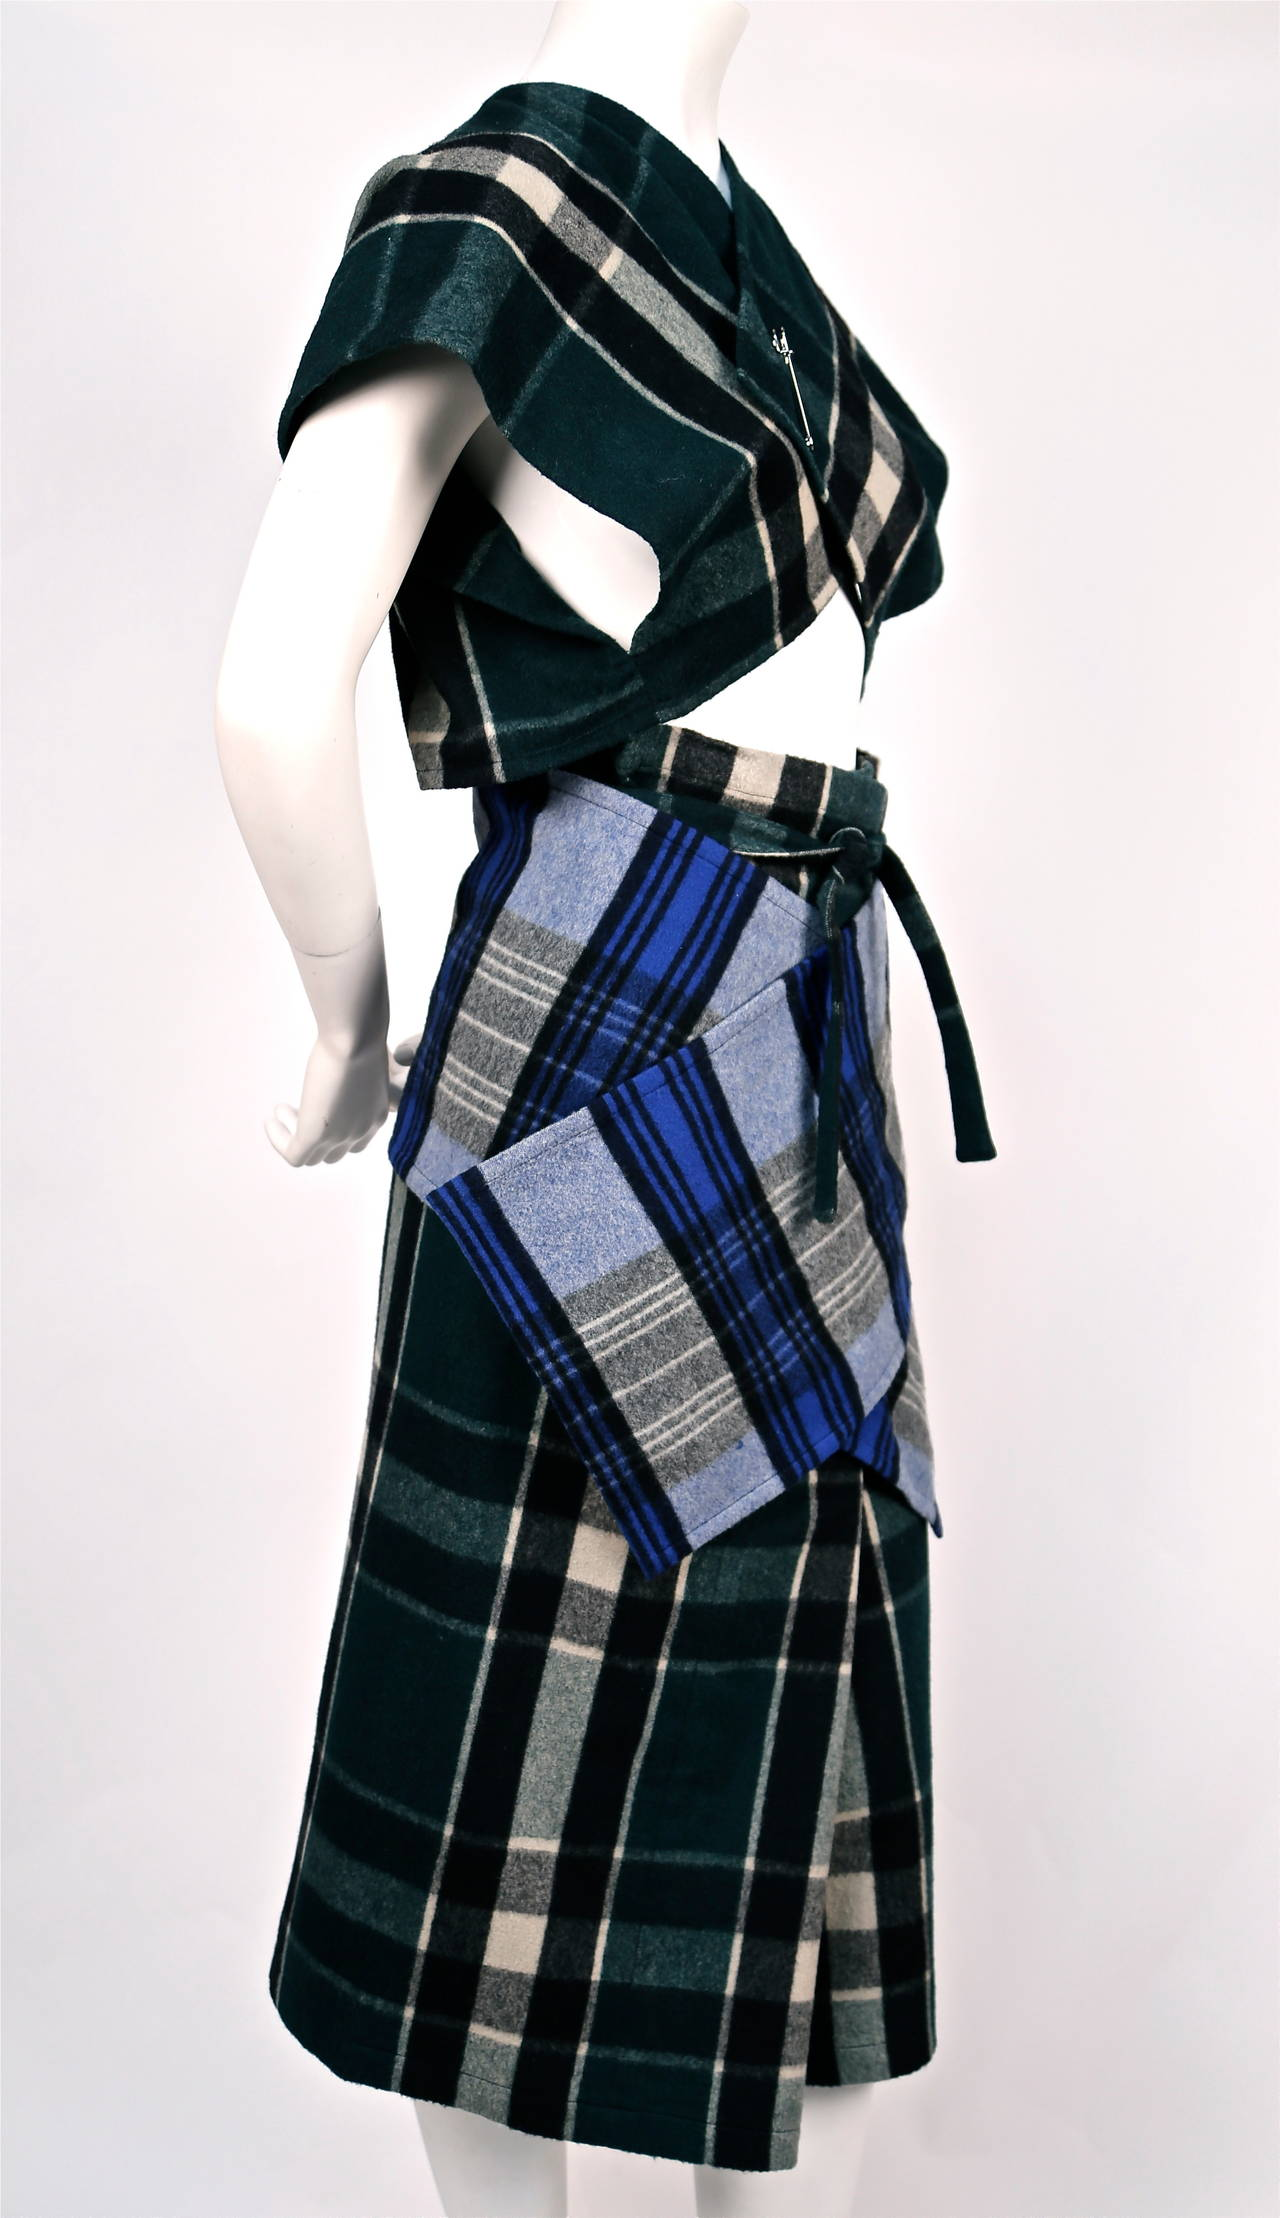 very rare plaid wool ensemble from COMME DES GARCONS dating to the early 1980's. Very rare to have matching set from this era. No size is indicated however the sizing is flexible. This set can fit up to a size 6 or 8. Shown on a size 2 mannequin